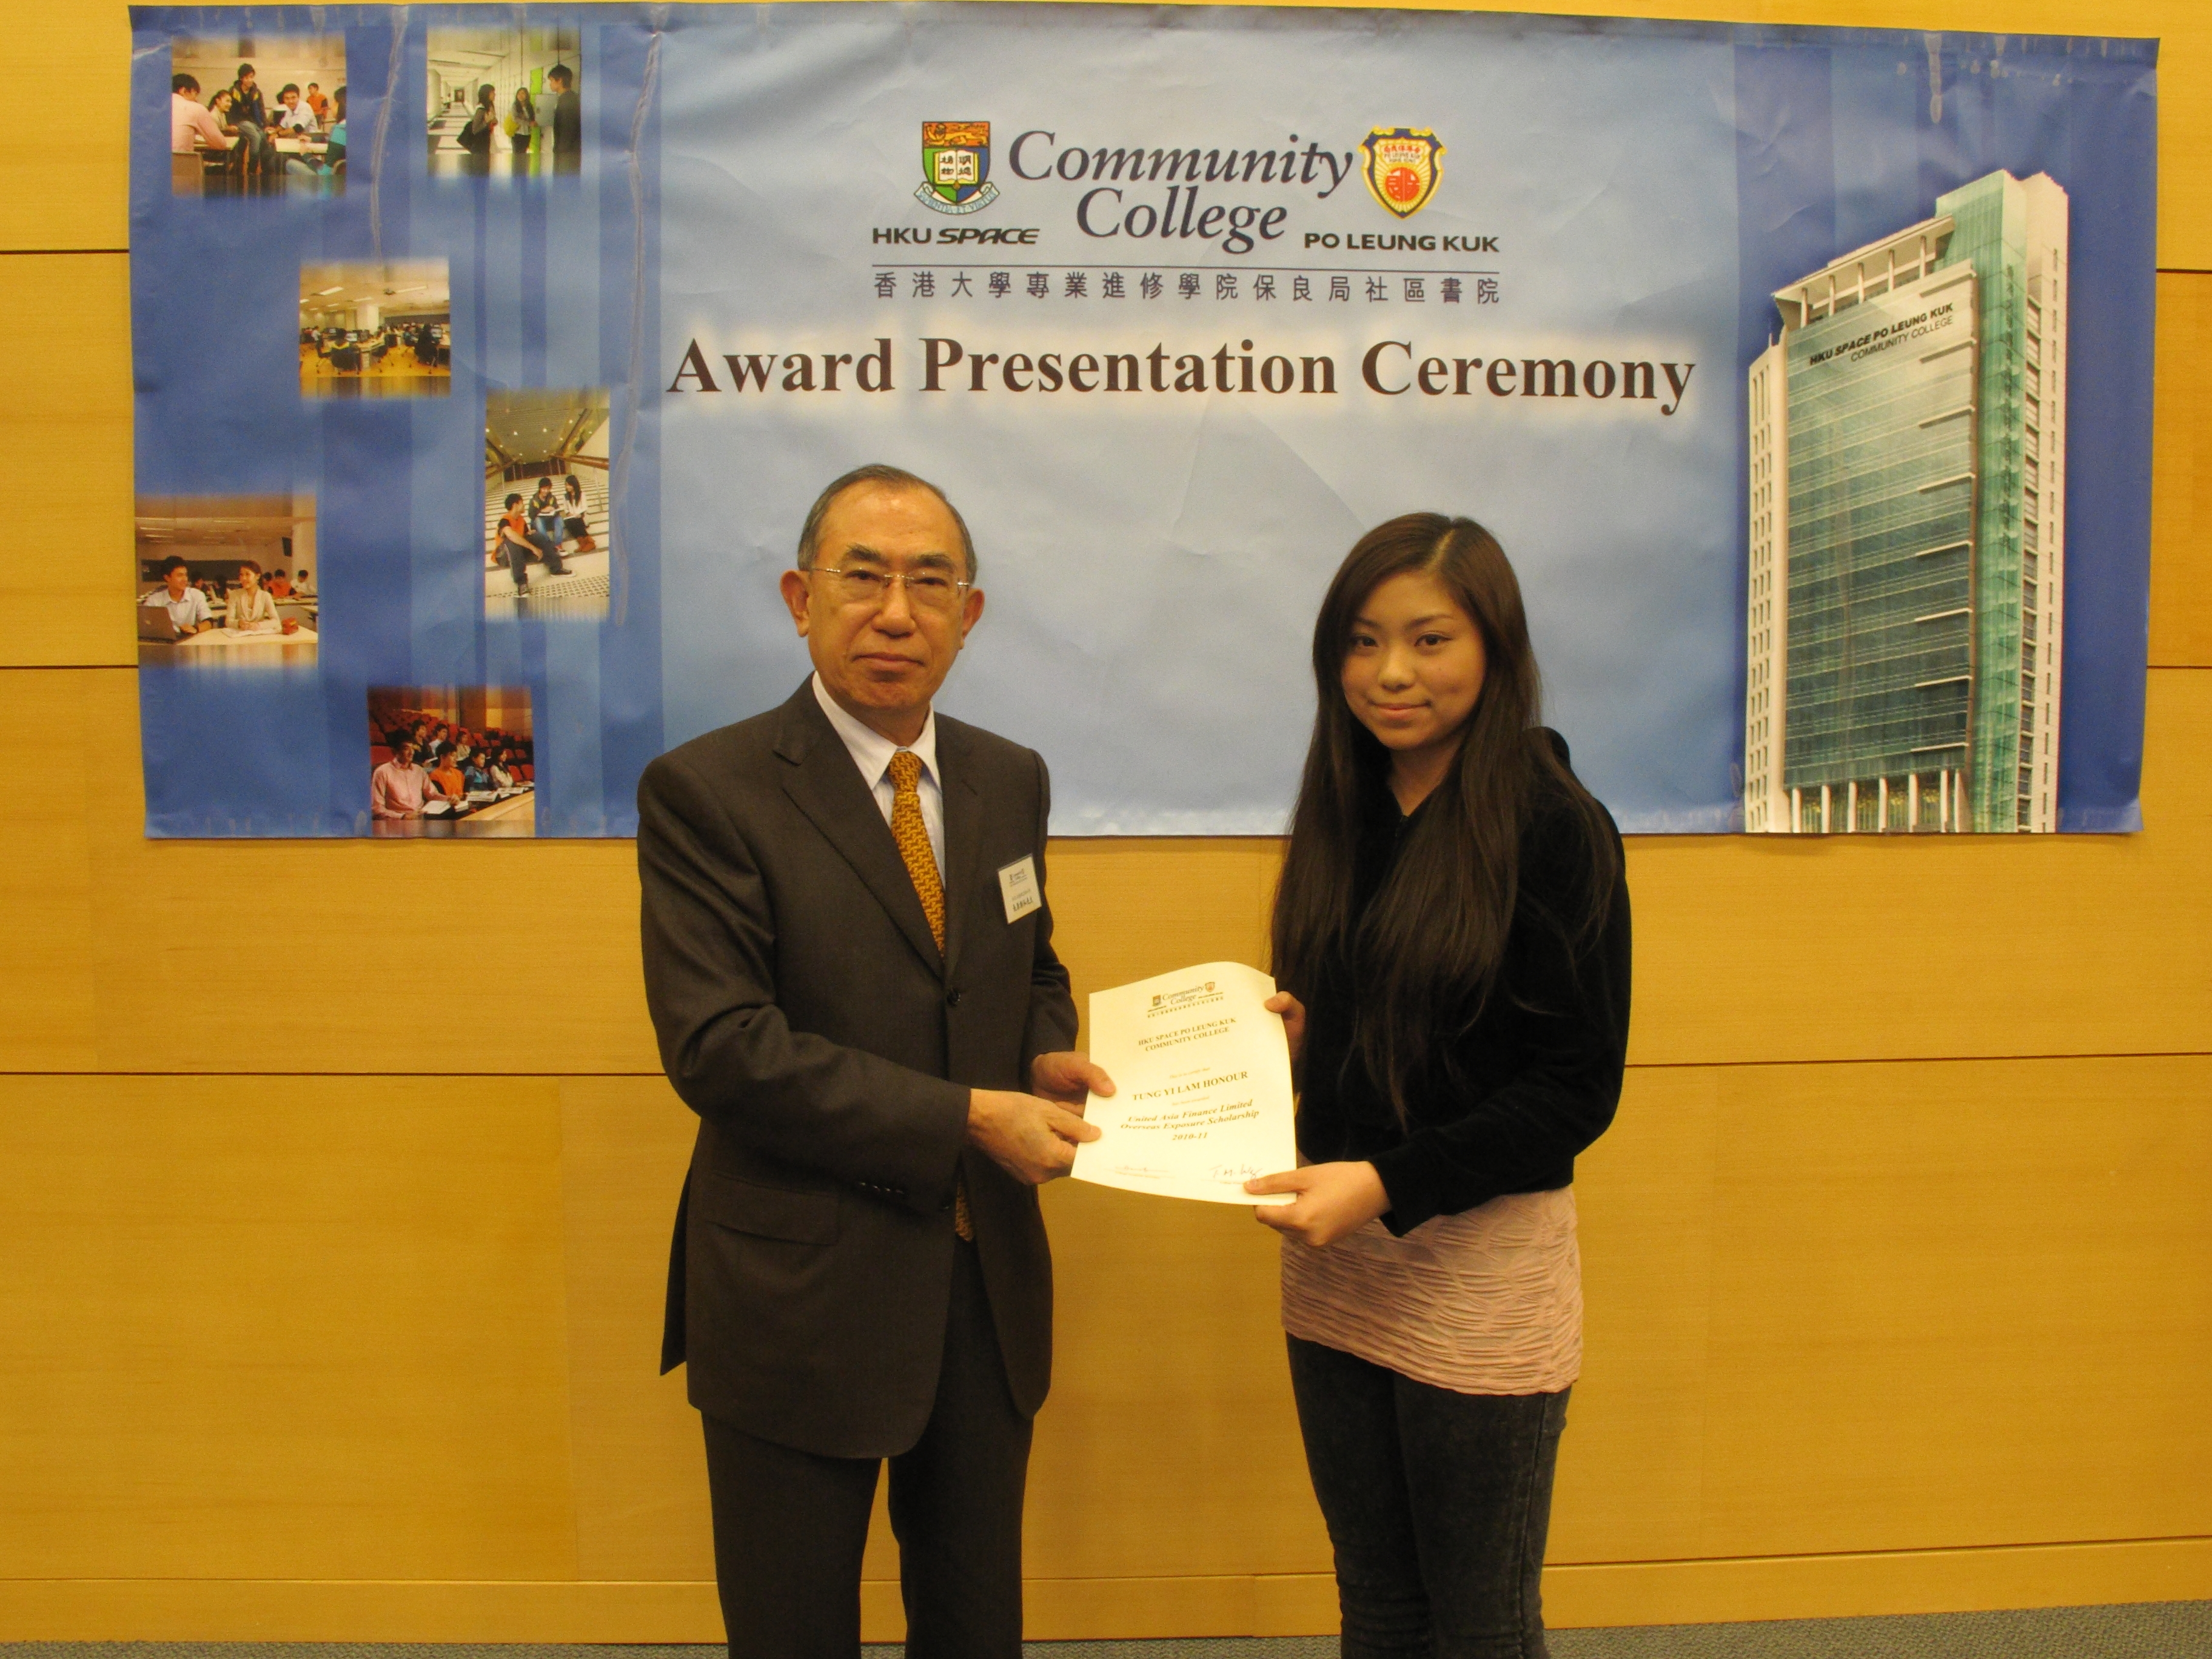 Award Presentation Ceremony 2011 - Photo - 31